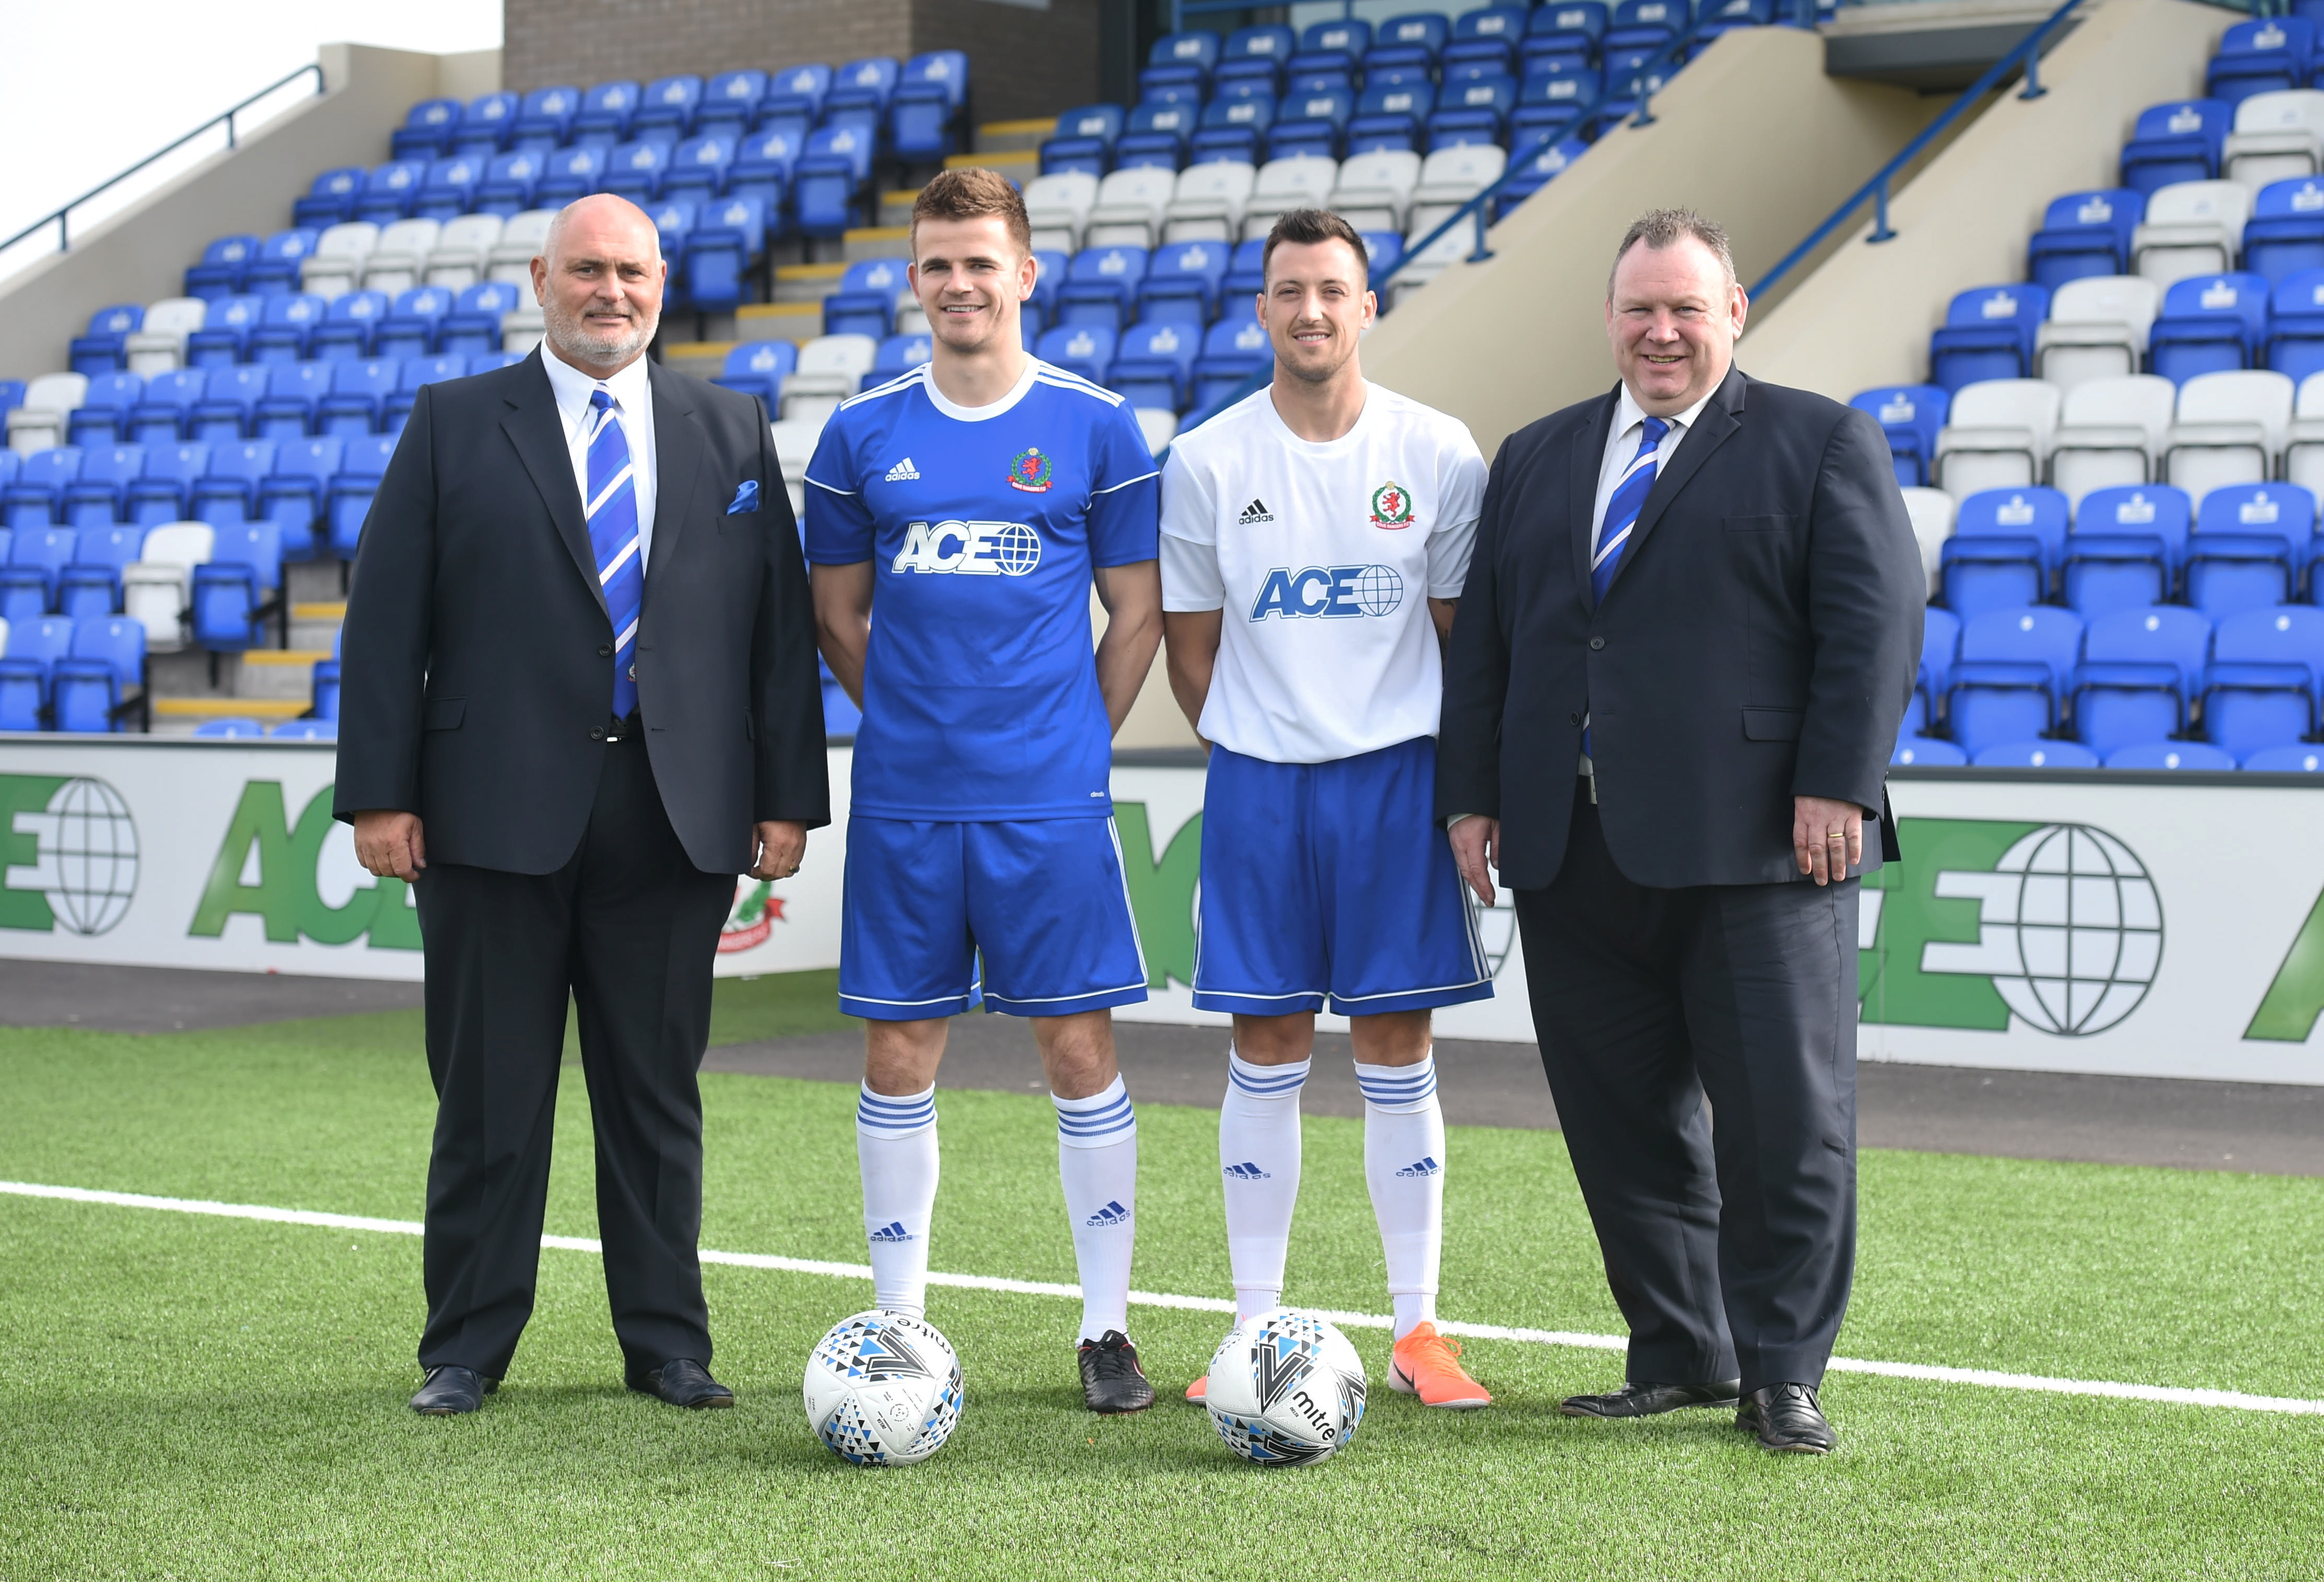 Cove reveal new sponsor ACE Group. From left, Terry Cobban, Jamie Redman, Connor Scully and Keith Moorhouse